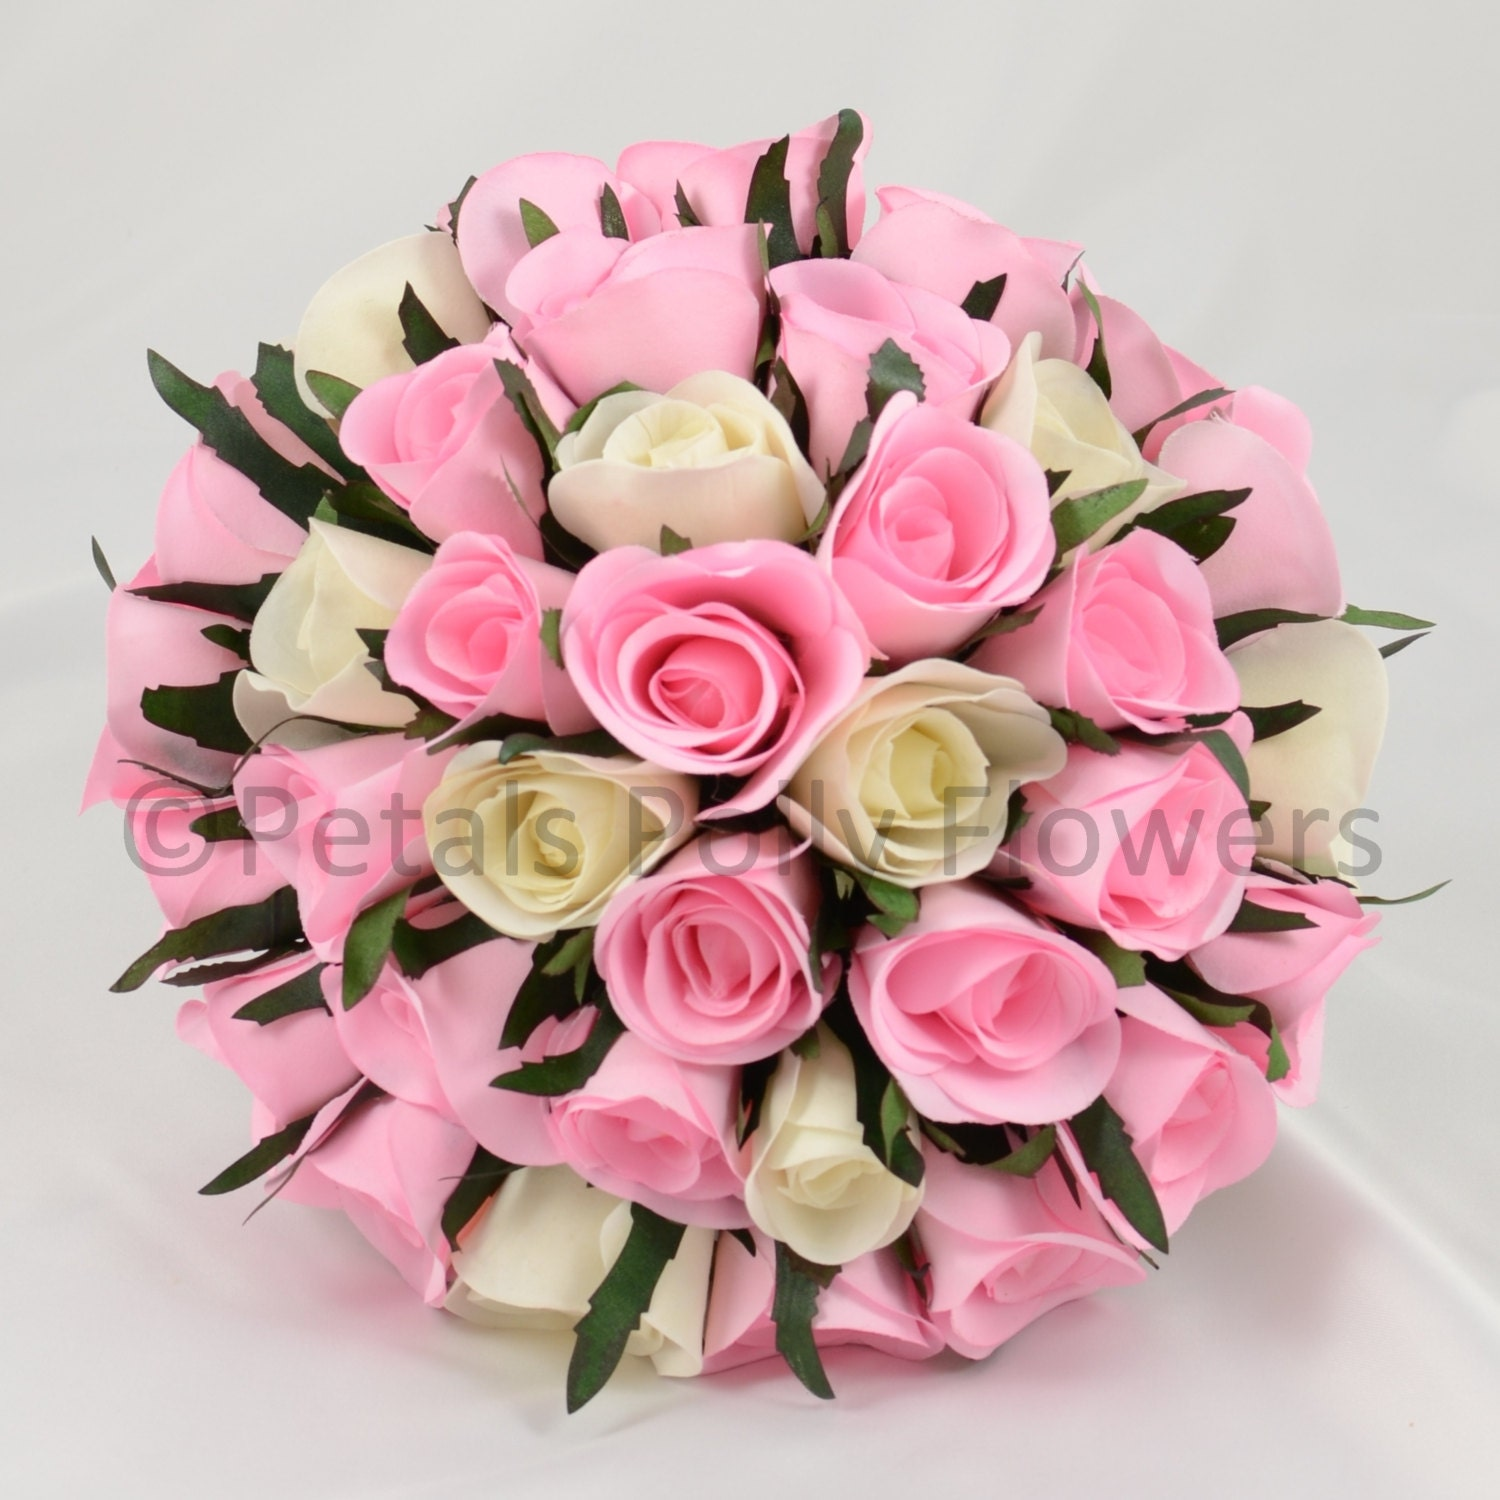 Artificial Wedding Flowers Baby Pink  Ivory Rose Brides Bouquet Posy (1)